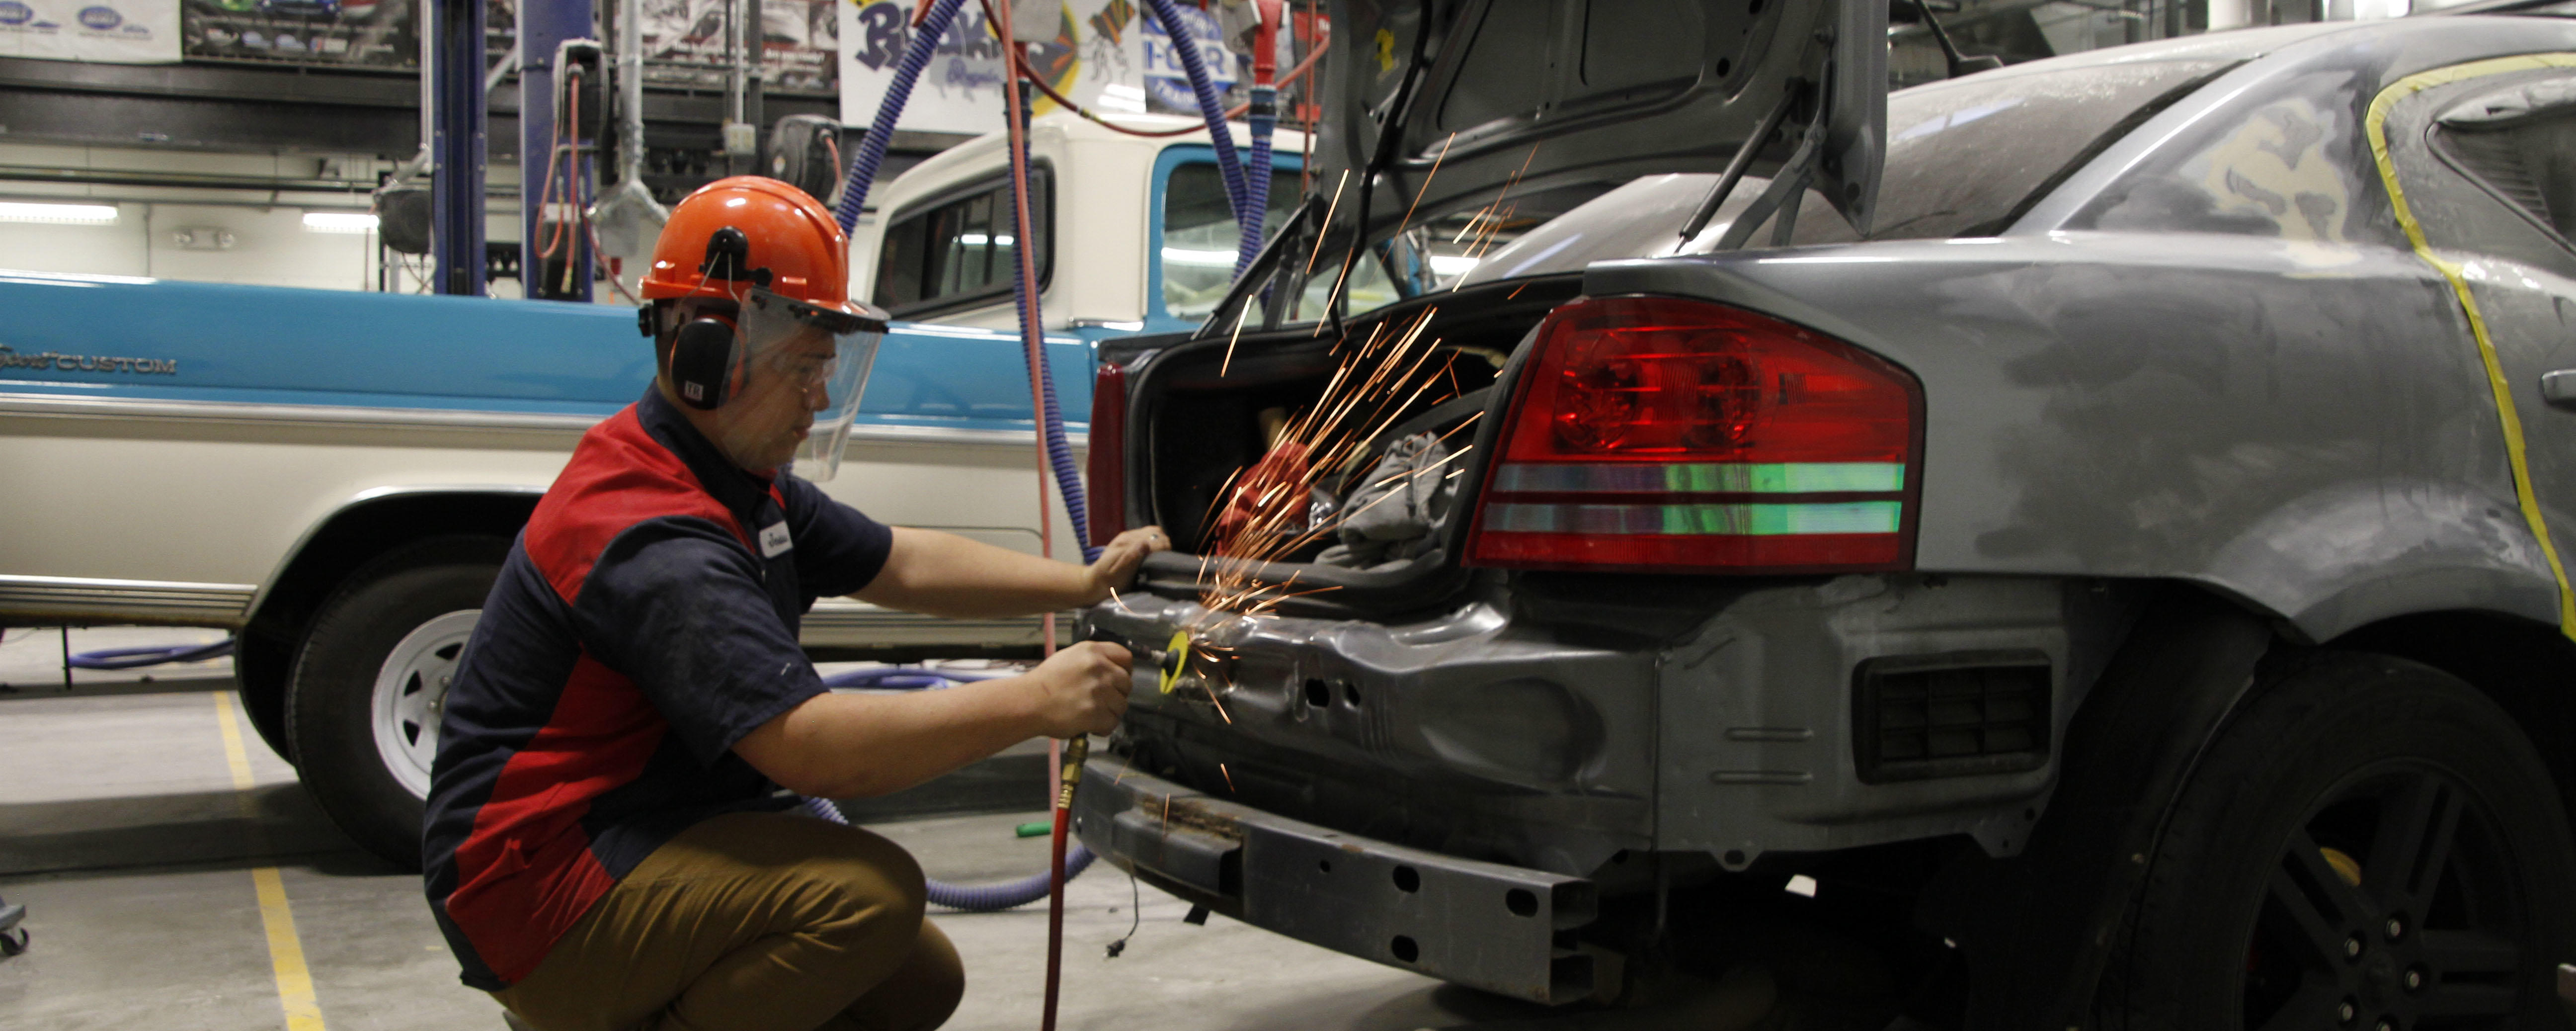 Hands-on Collision Repair Technology